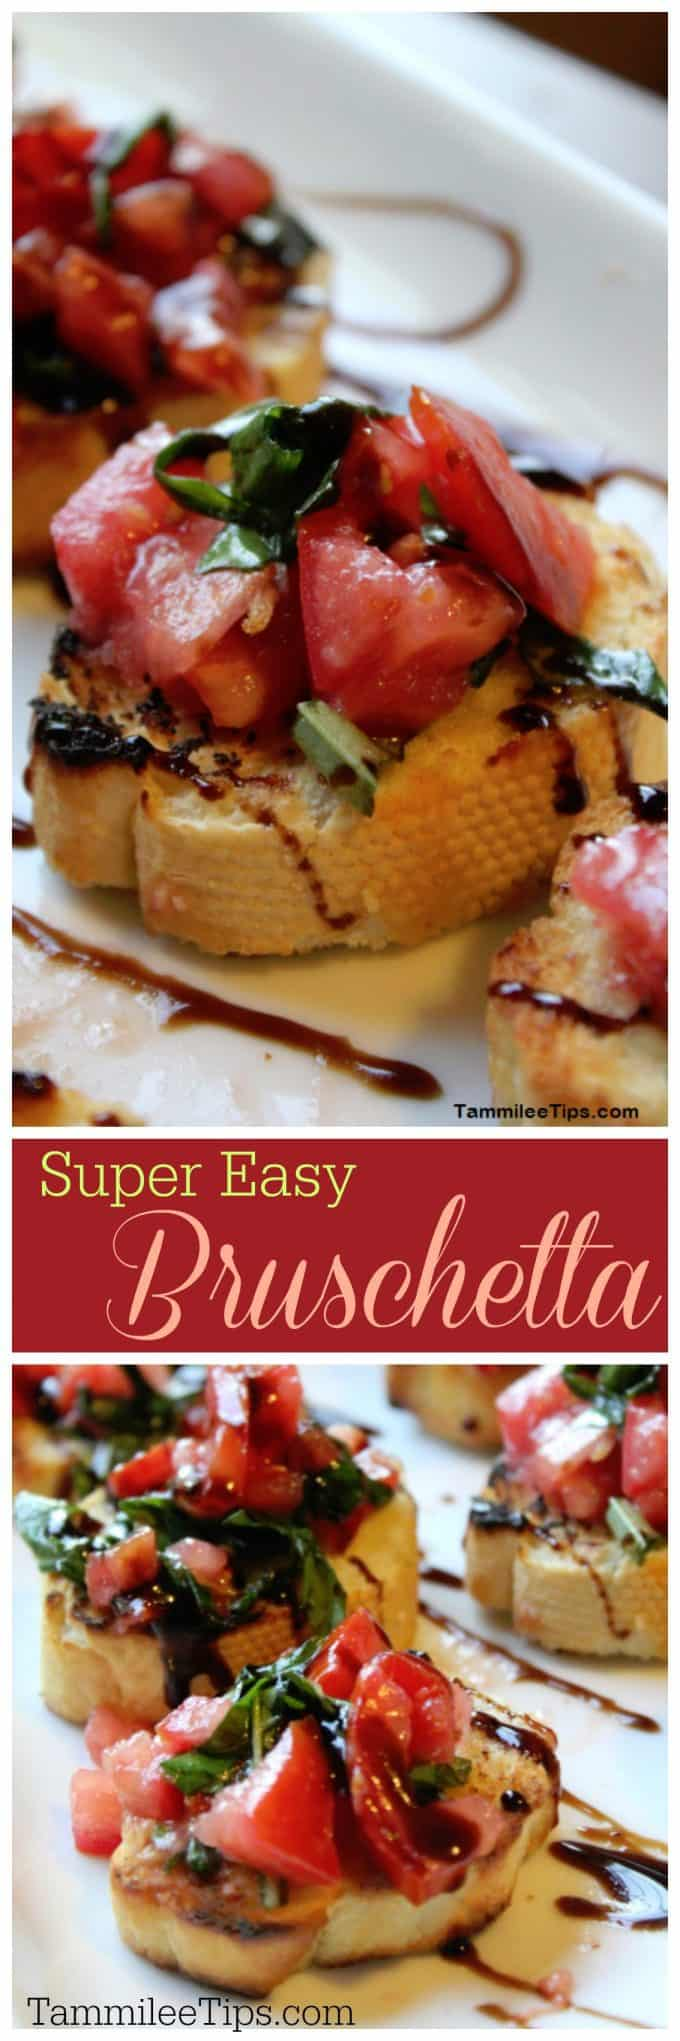 Super Easy Bruschetta Recipe! This is the best appetizer! So simple to make and great for a crowd! You can't go wrong with this tomato, balsamic vinegar glaze appetizer! Hello yum! Great for super bowl parties, football parties, birthdays, weddings, or any day you need a quick meal.   #bruschetta #appetizer #easyappetizer #holiday #partyfood